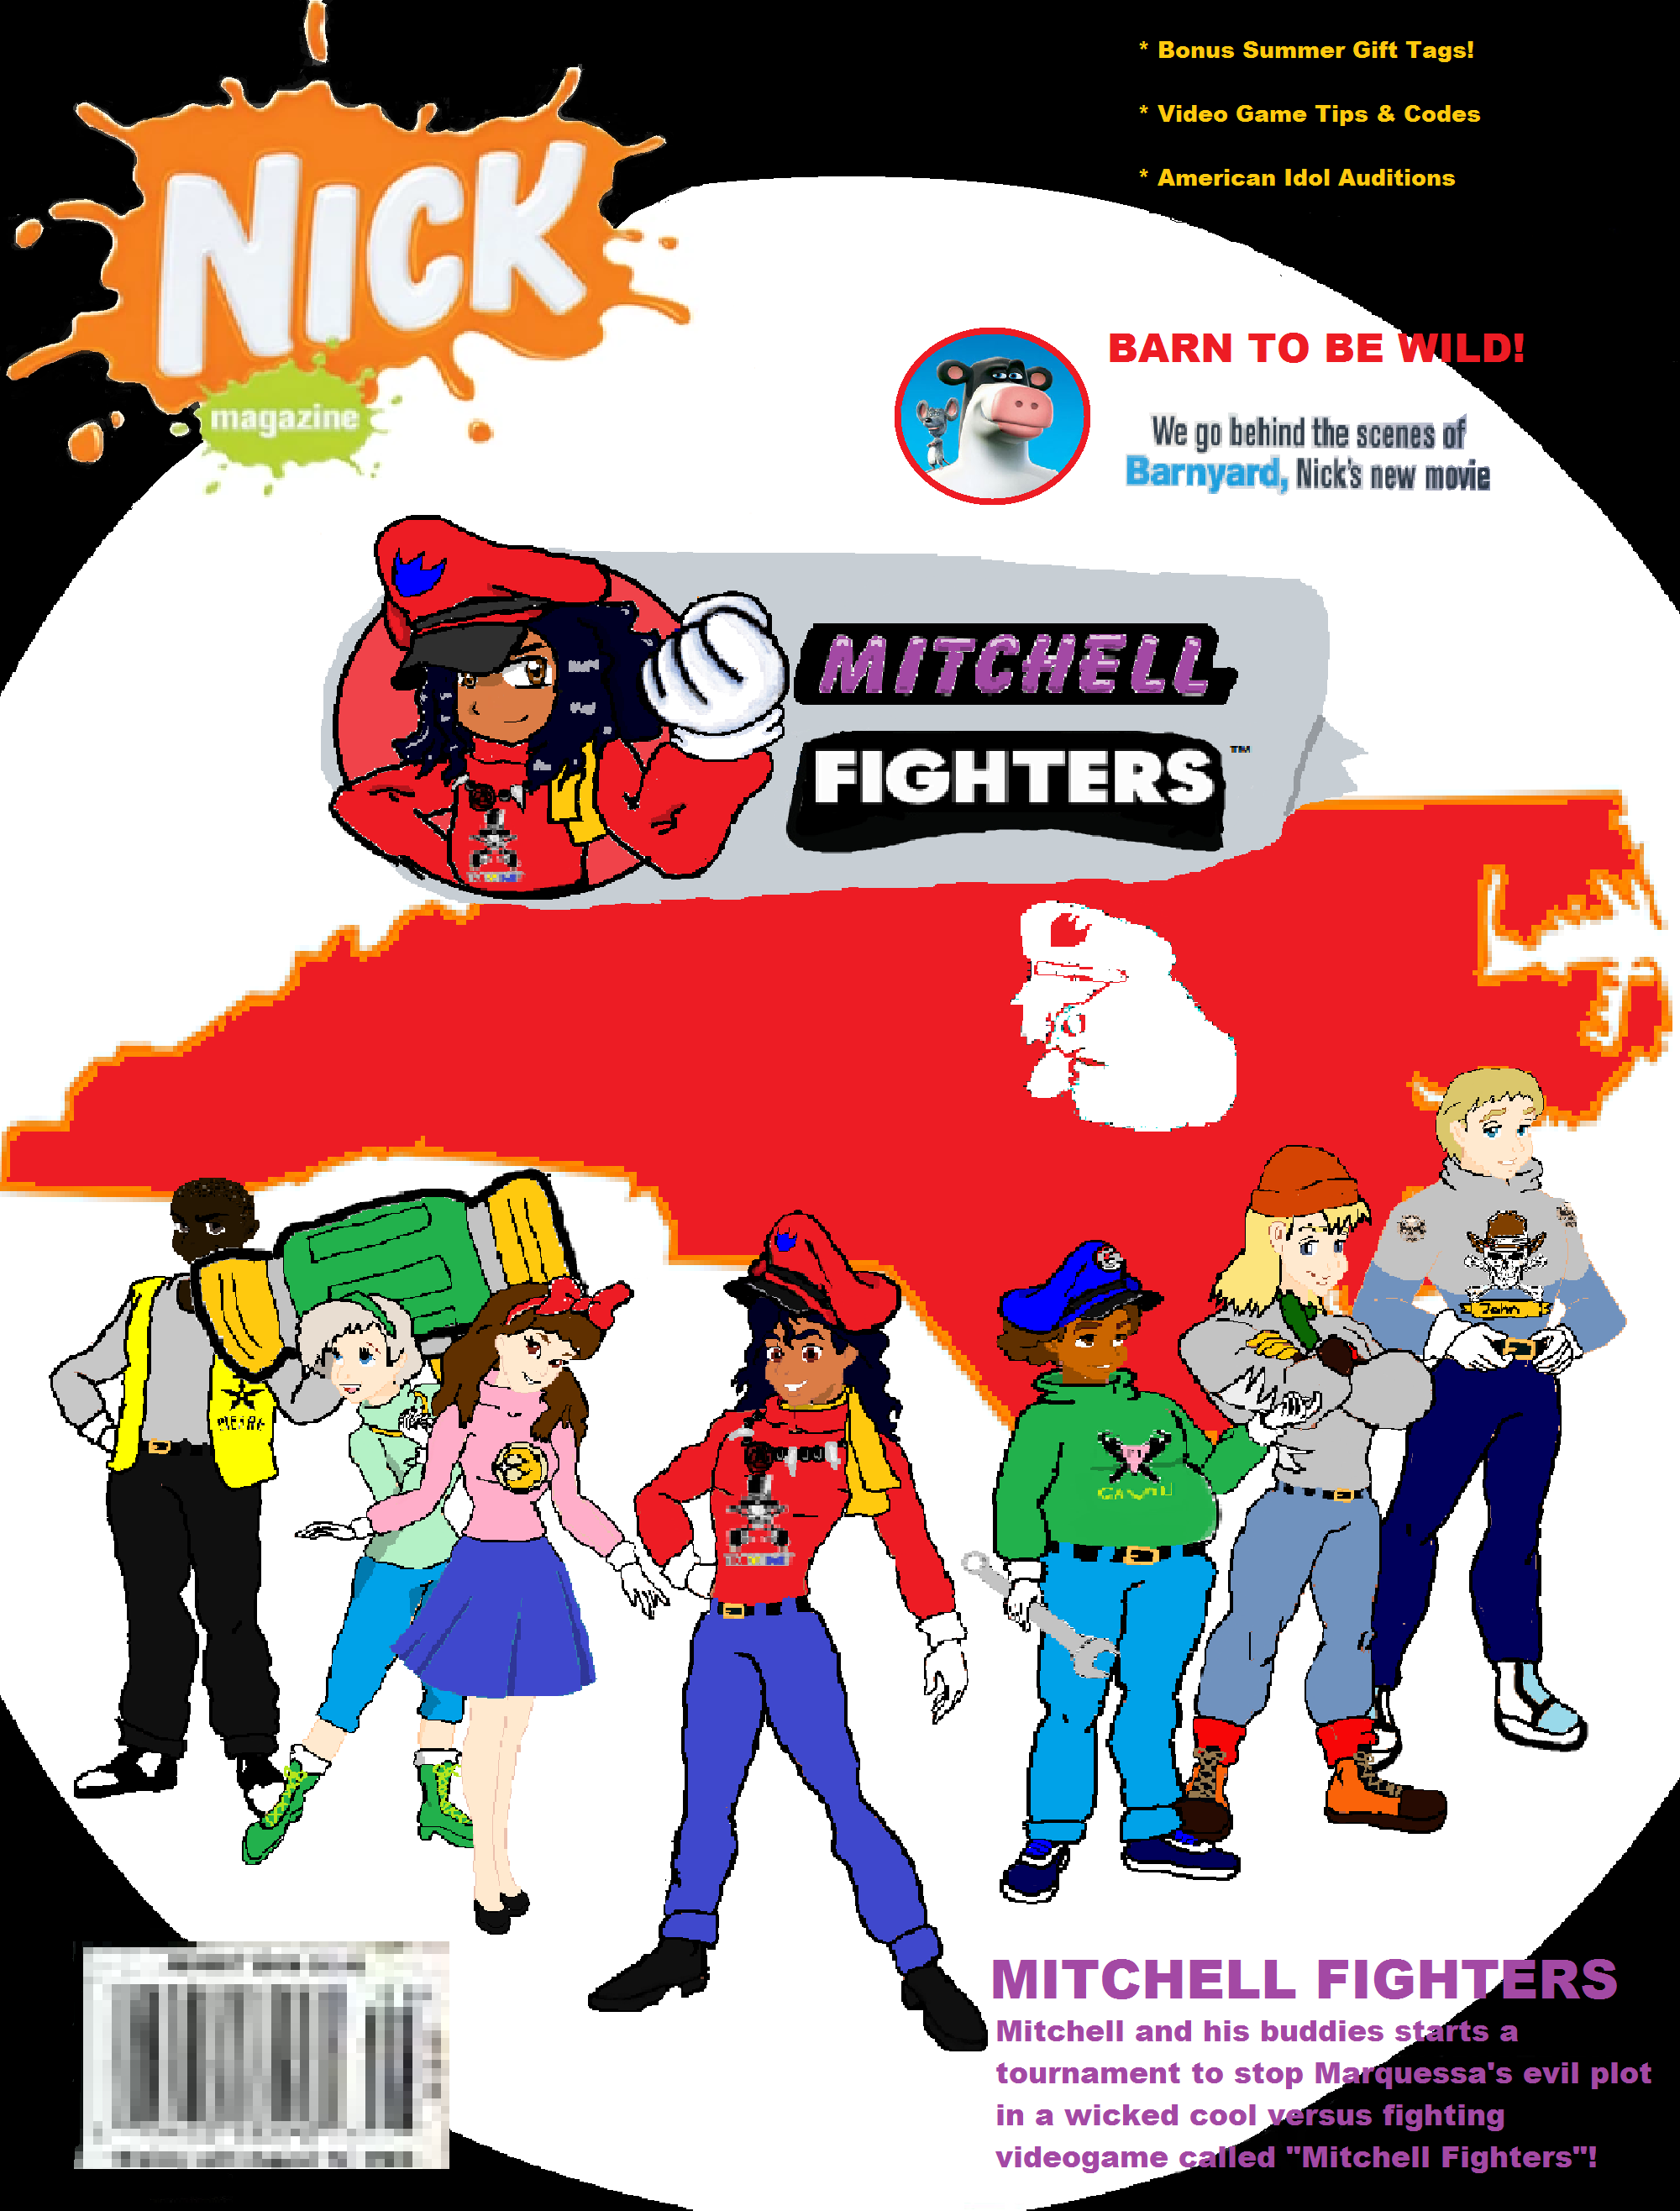 Mitchell Fighters Nickelodeon Magazine cover. Arcade